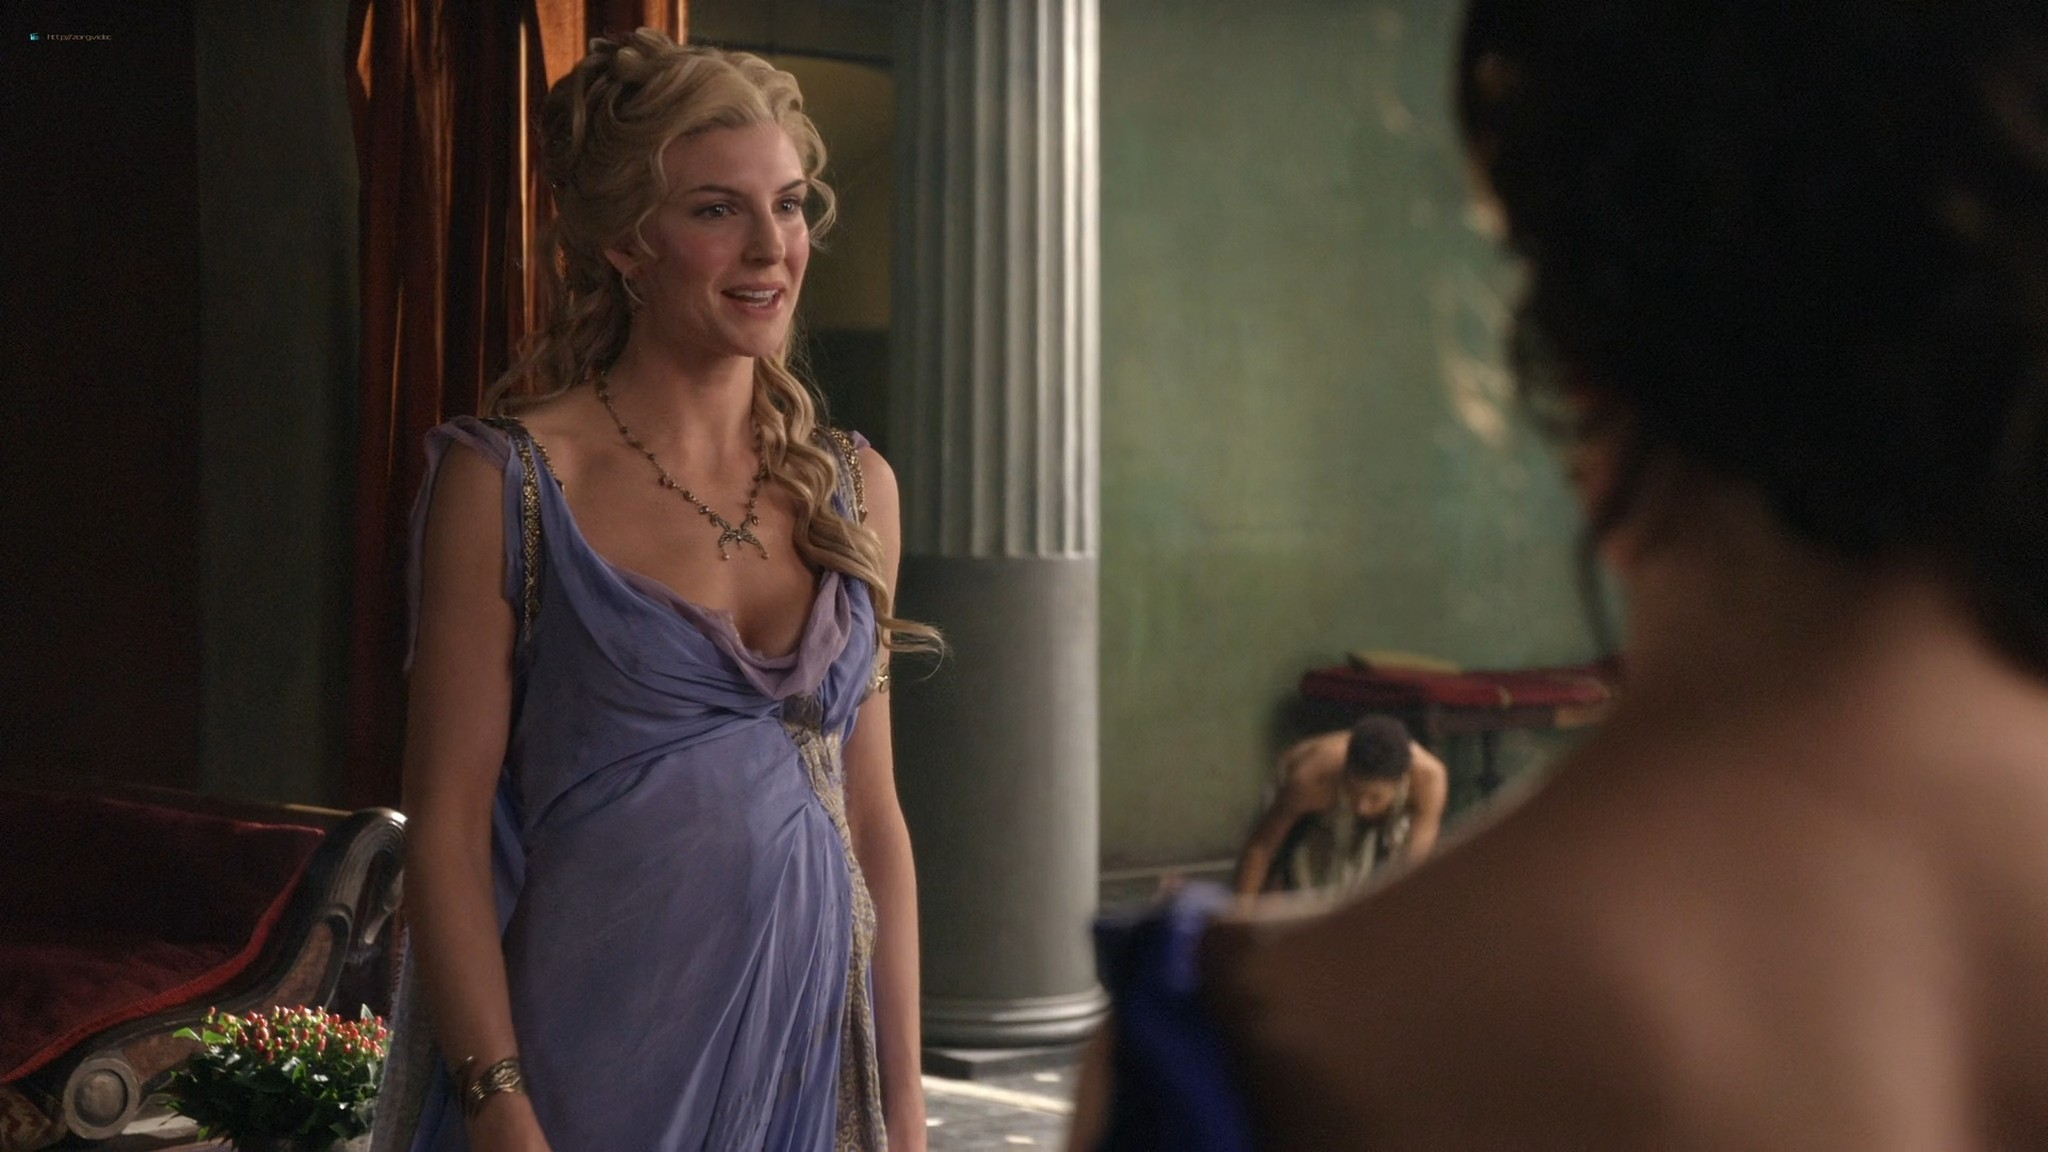 Viva Bianca nude Lucy Lawless nude sex others nude - Spartacus - Vengeance (2012) e4 1080p BluRay (17)